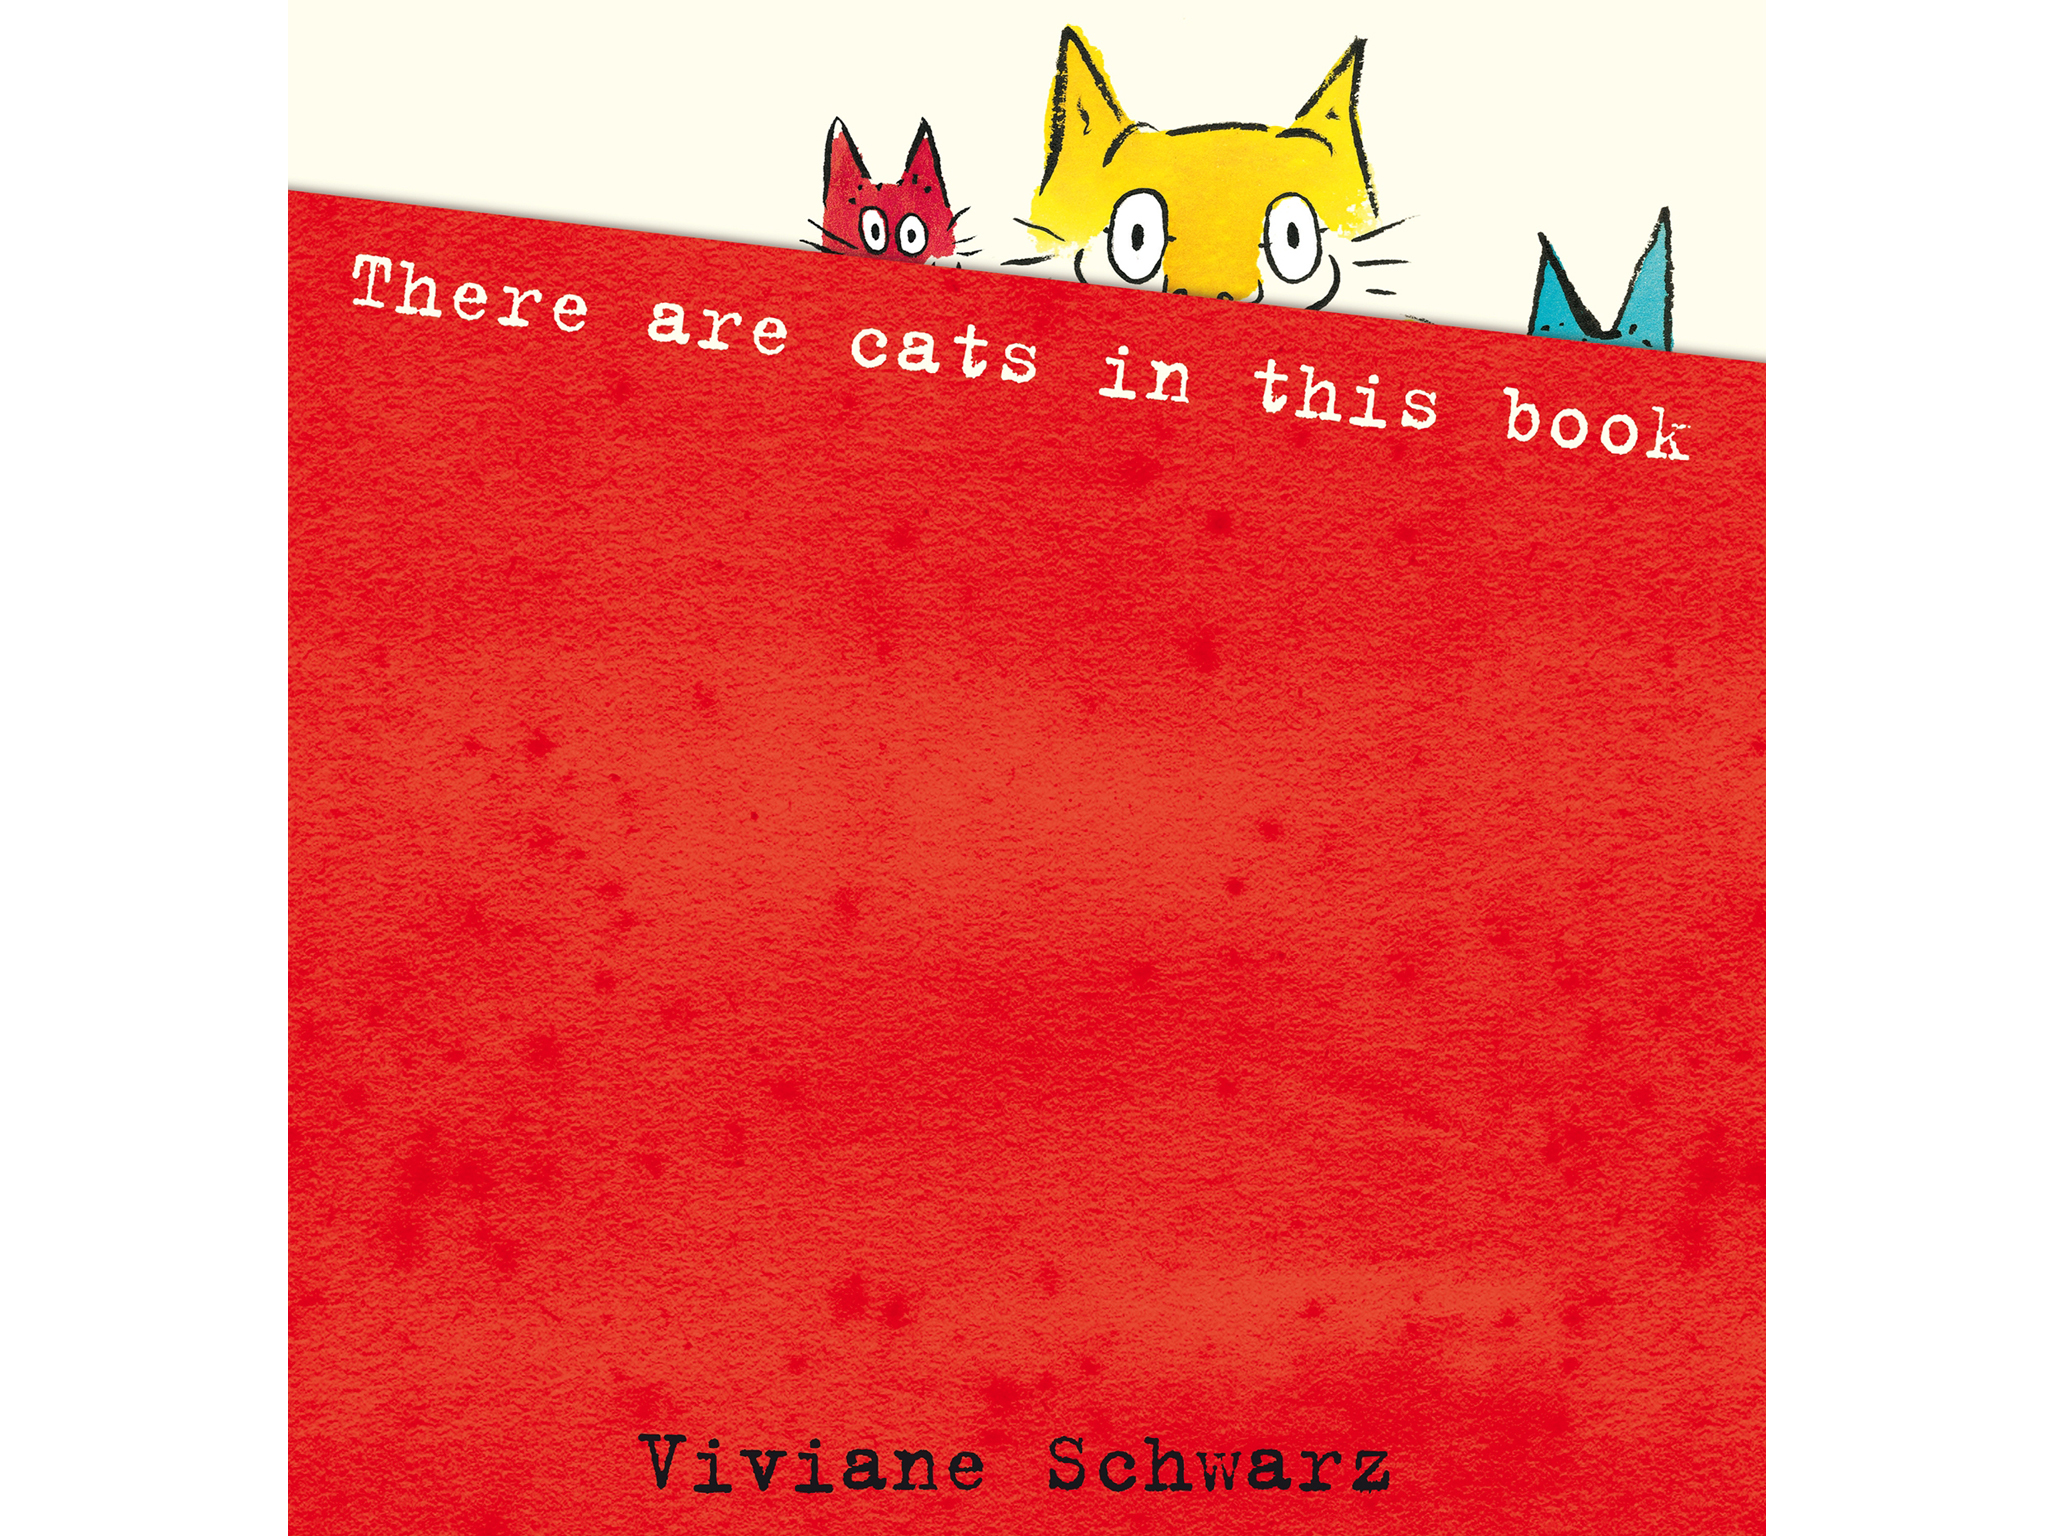 100 best children's books: There are Cats in this book